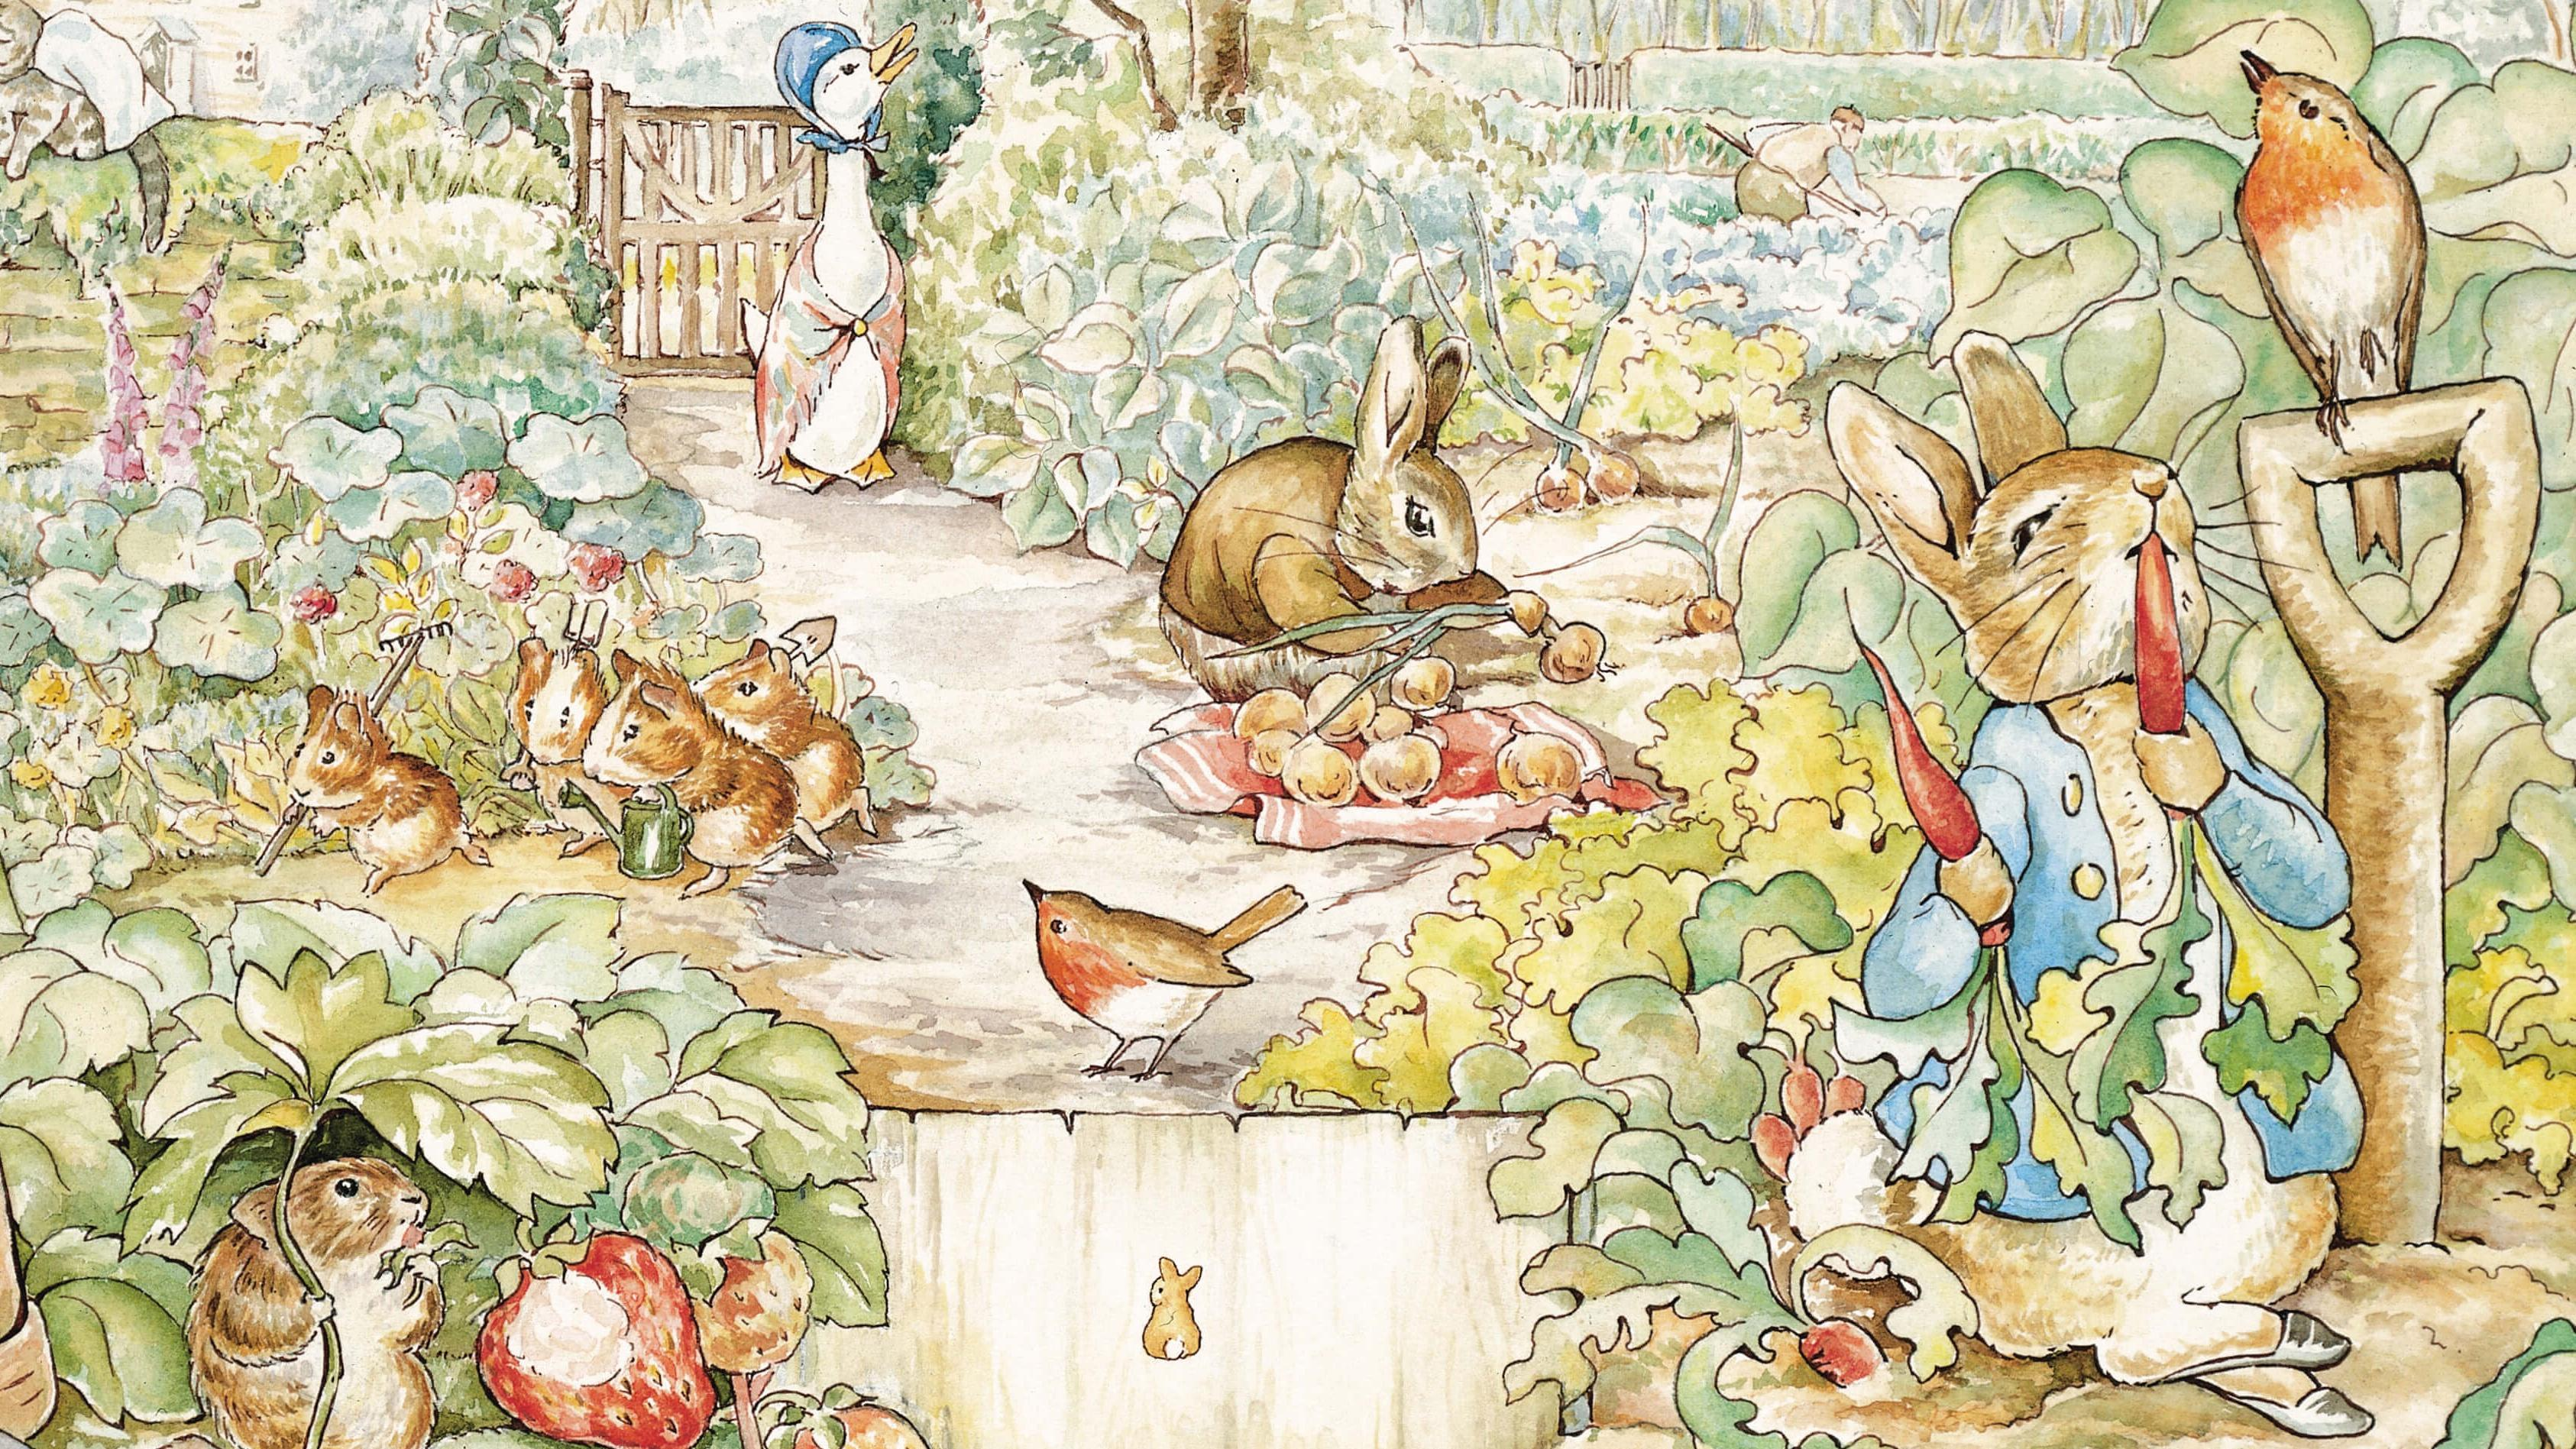 Beatrix-Potter-The-Tale-of-Peter-the-Rabbit